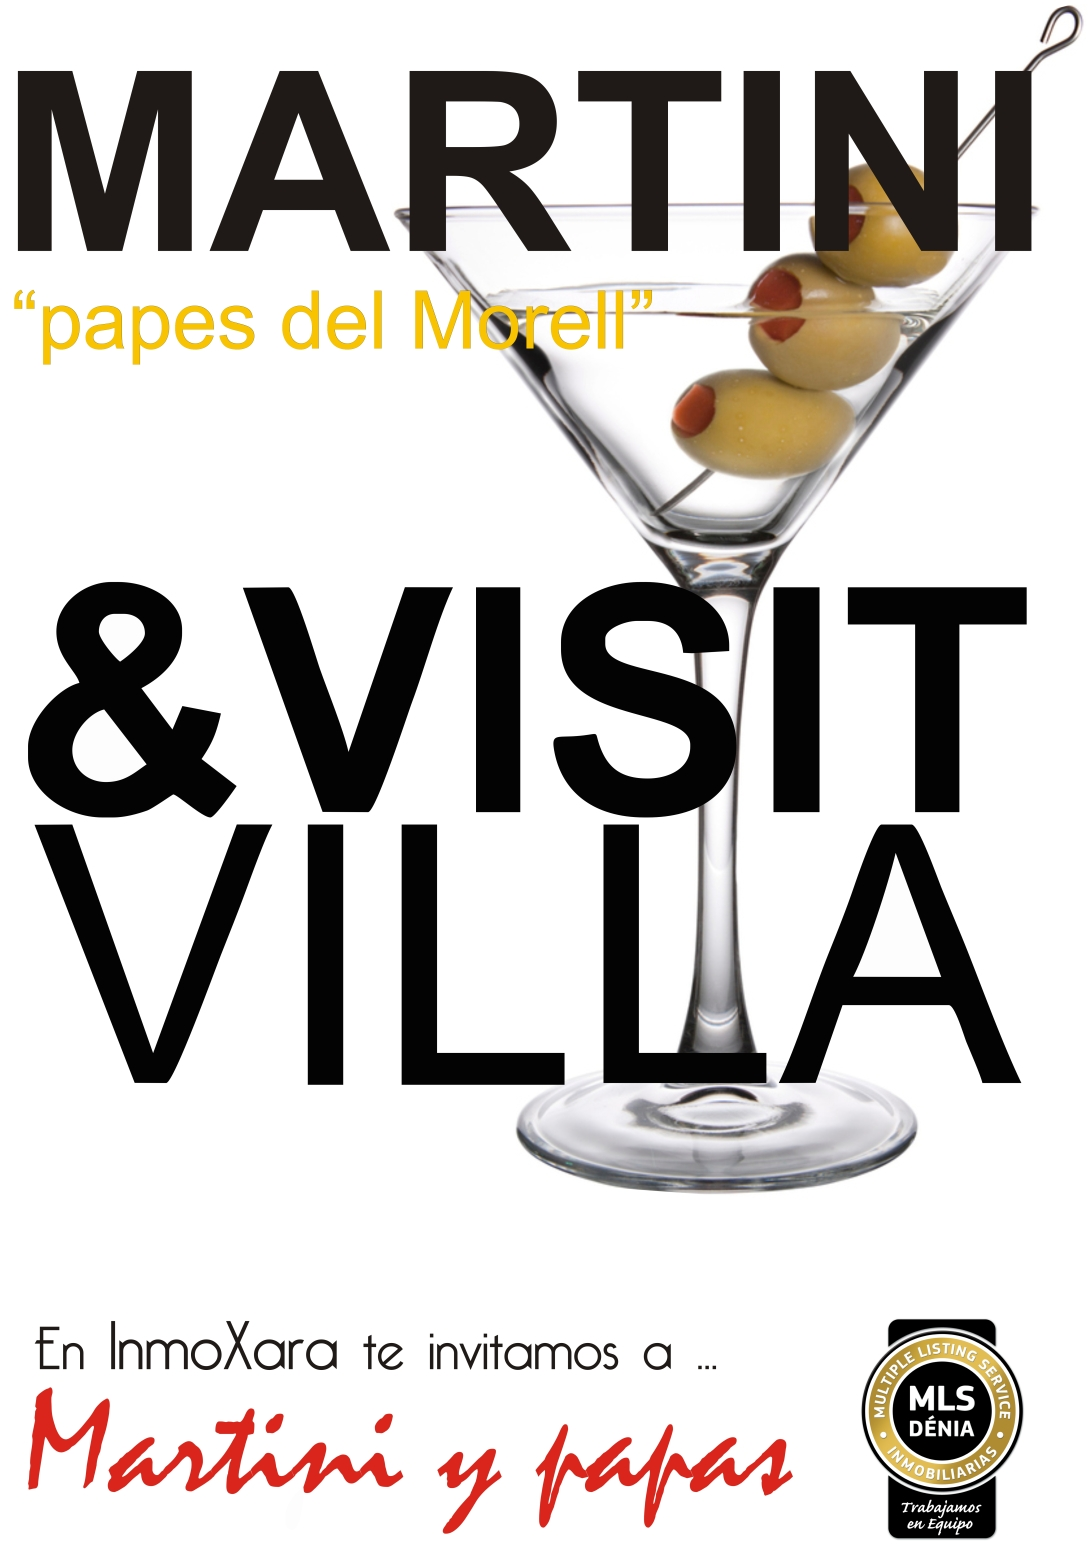 CARTEL_A3_MARTINI_Y_PAPAS.JPG